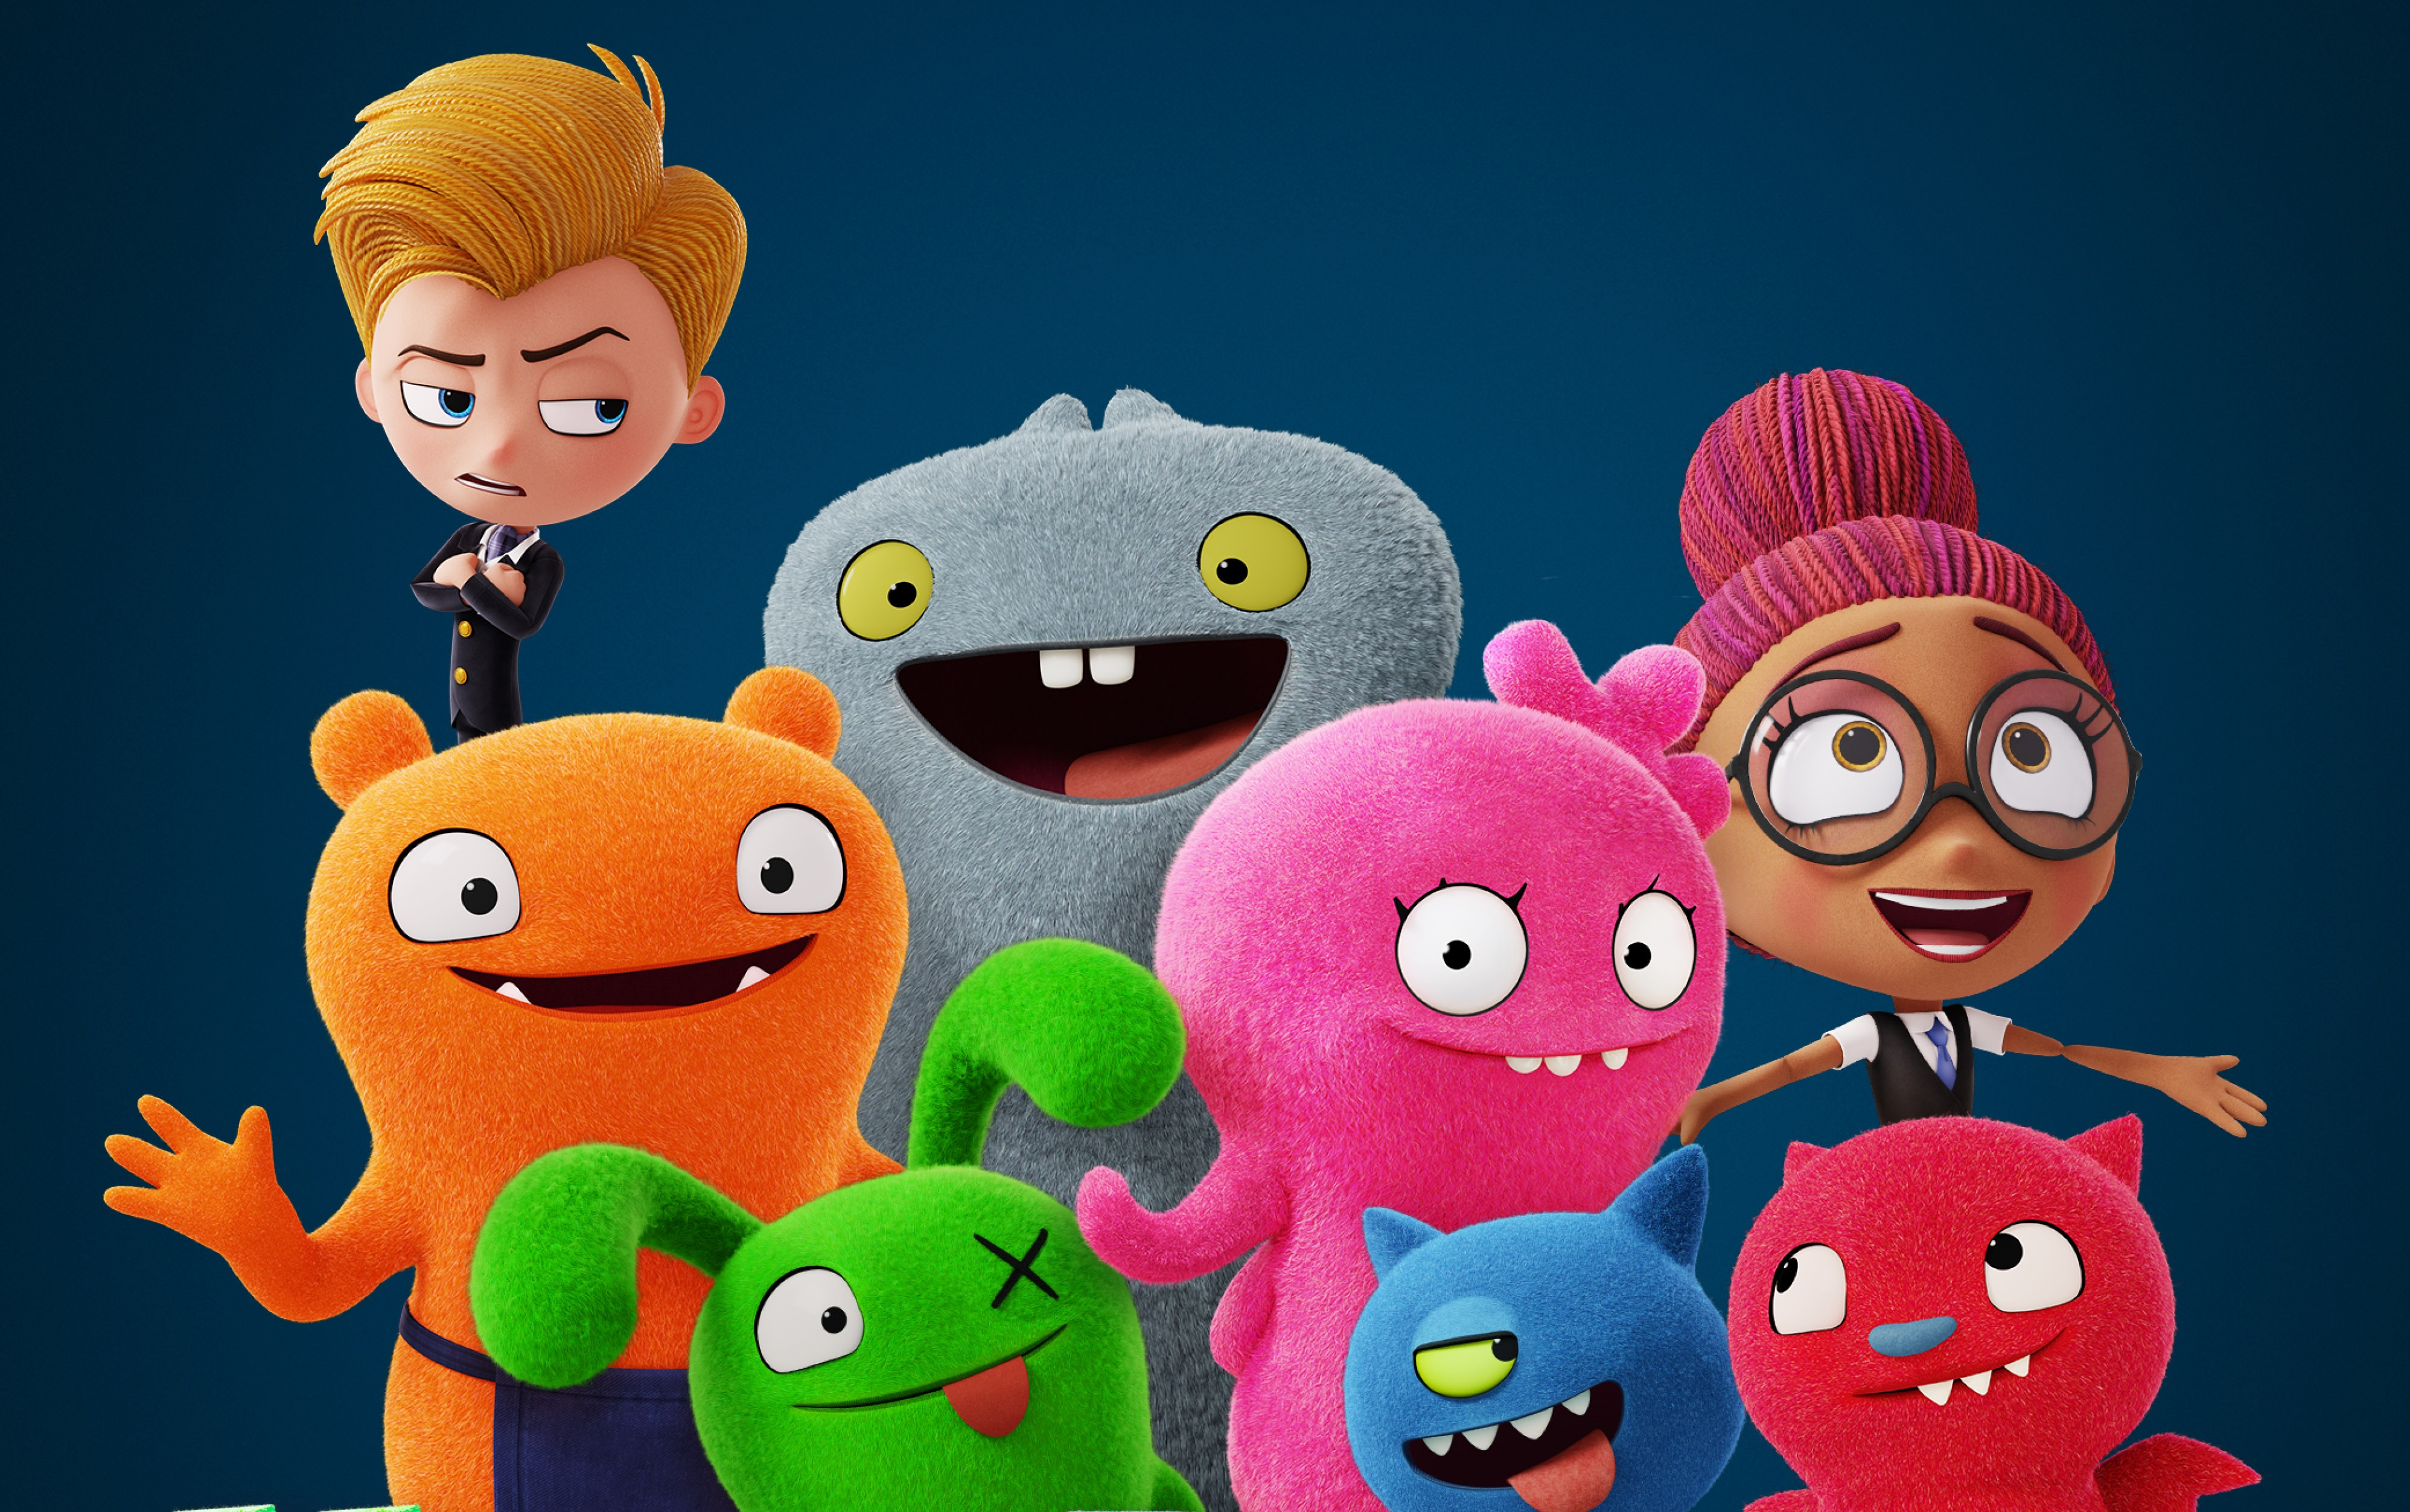 New UglyDolls Posters Embrace the Joy of Unconventionality